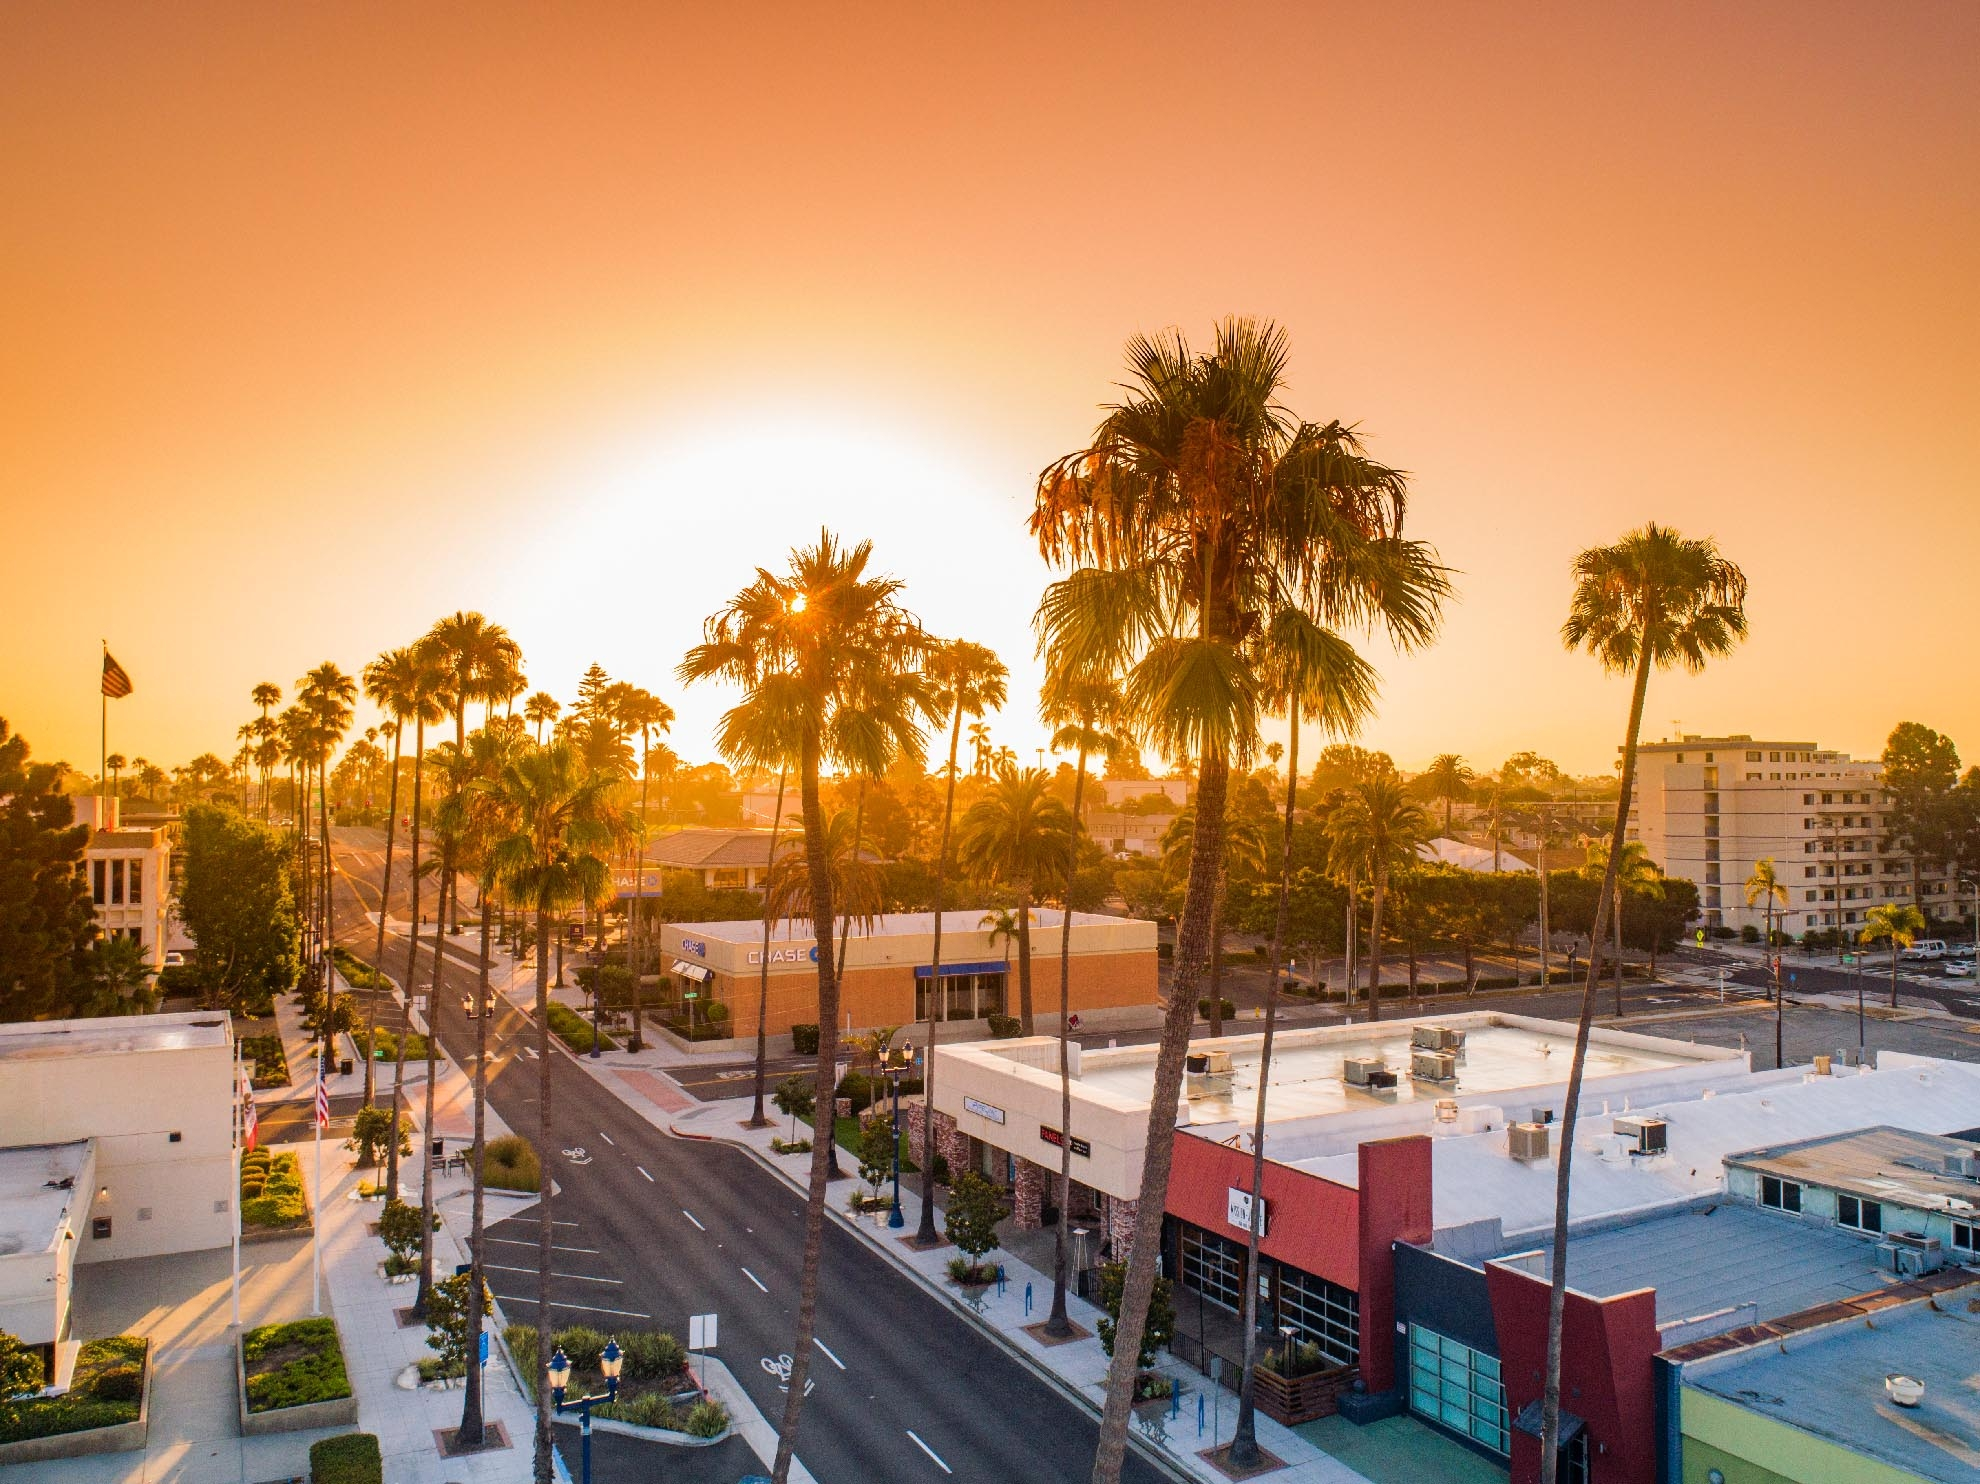 Drone Photograph of Sunrise in center of Oceanside California